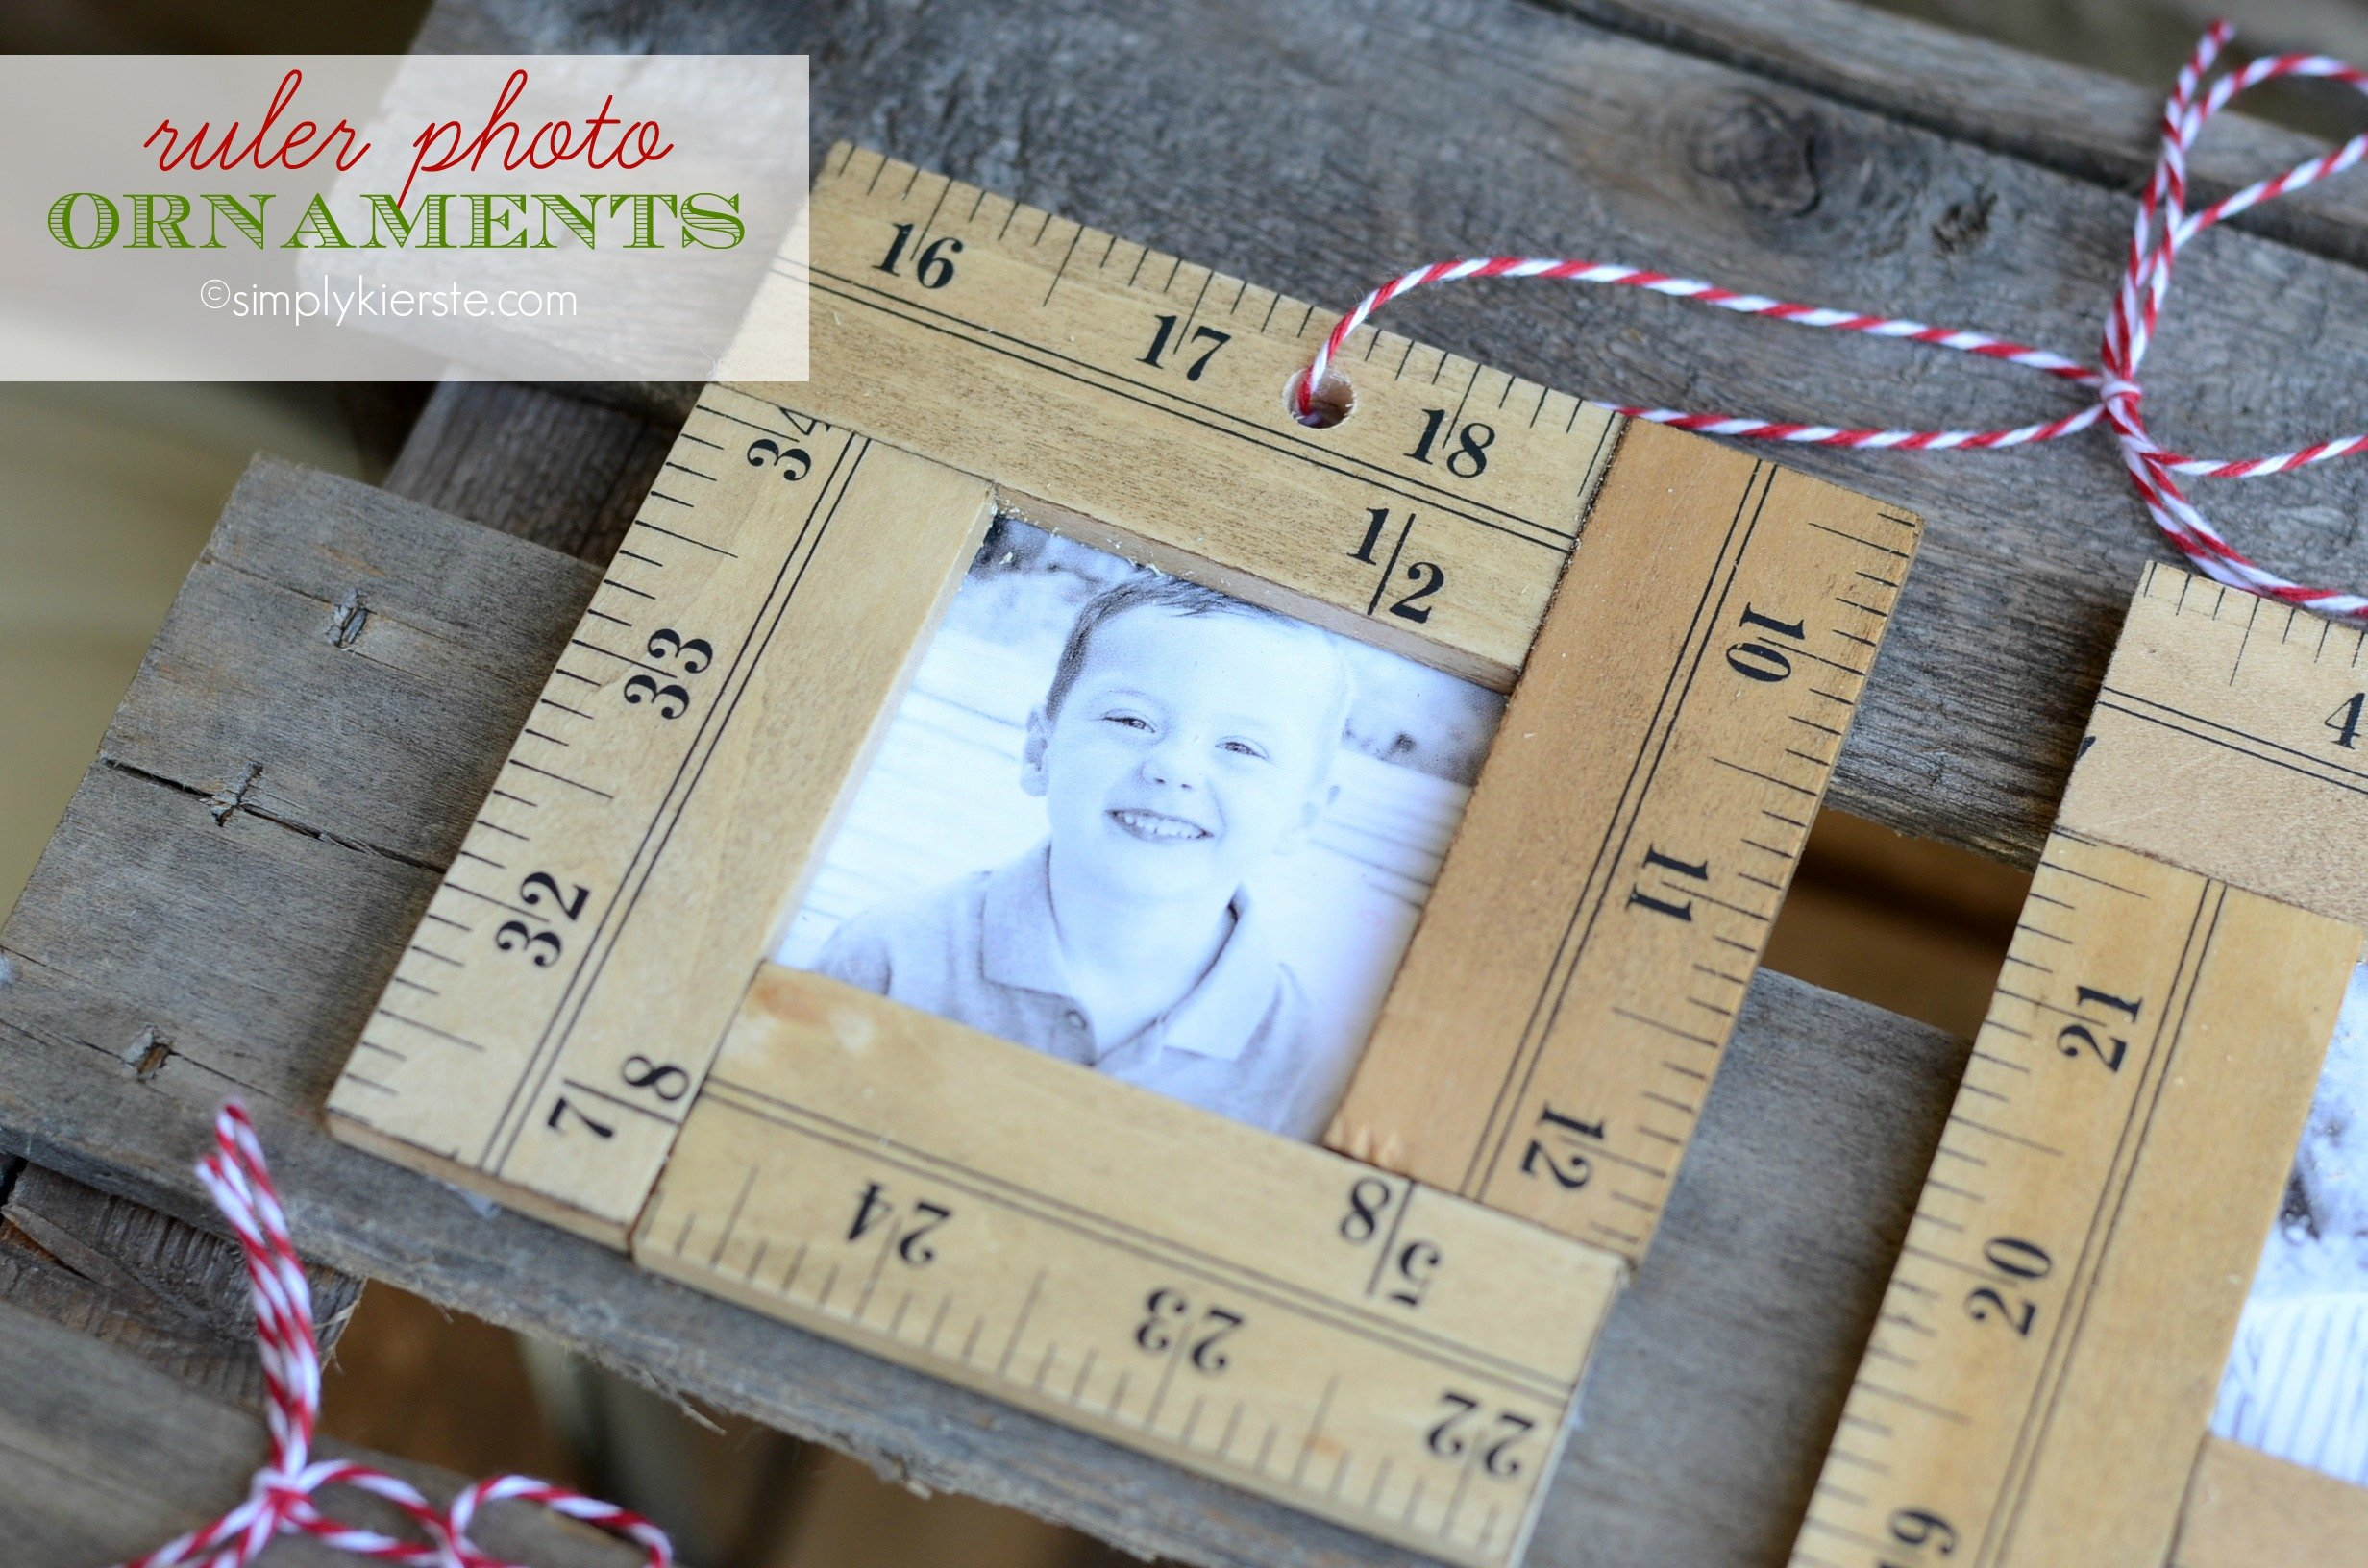 Ruler Photo Ornaments  simplykierstecom